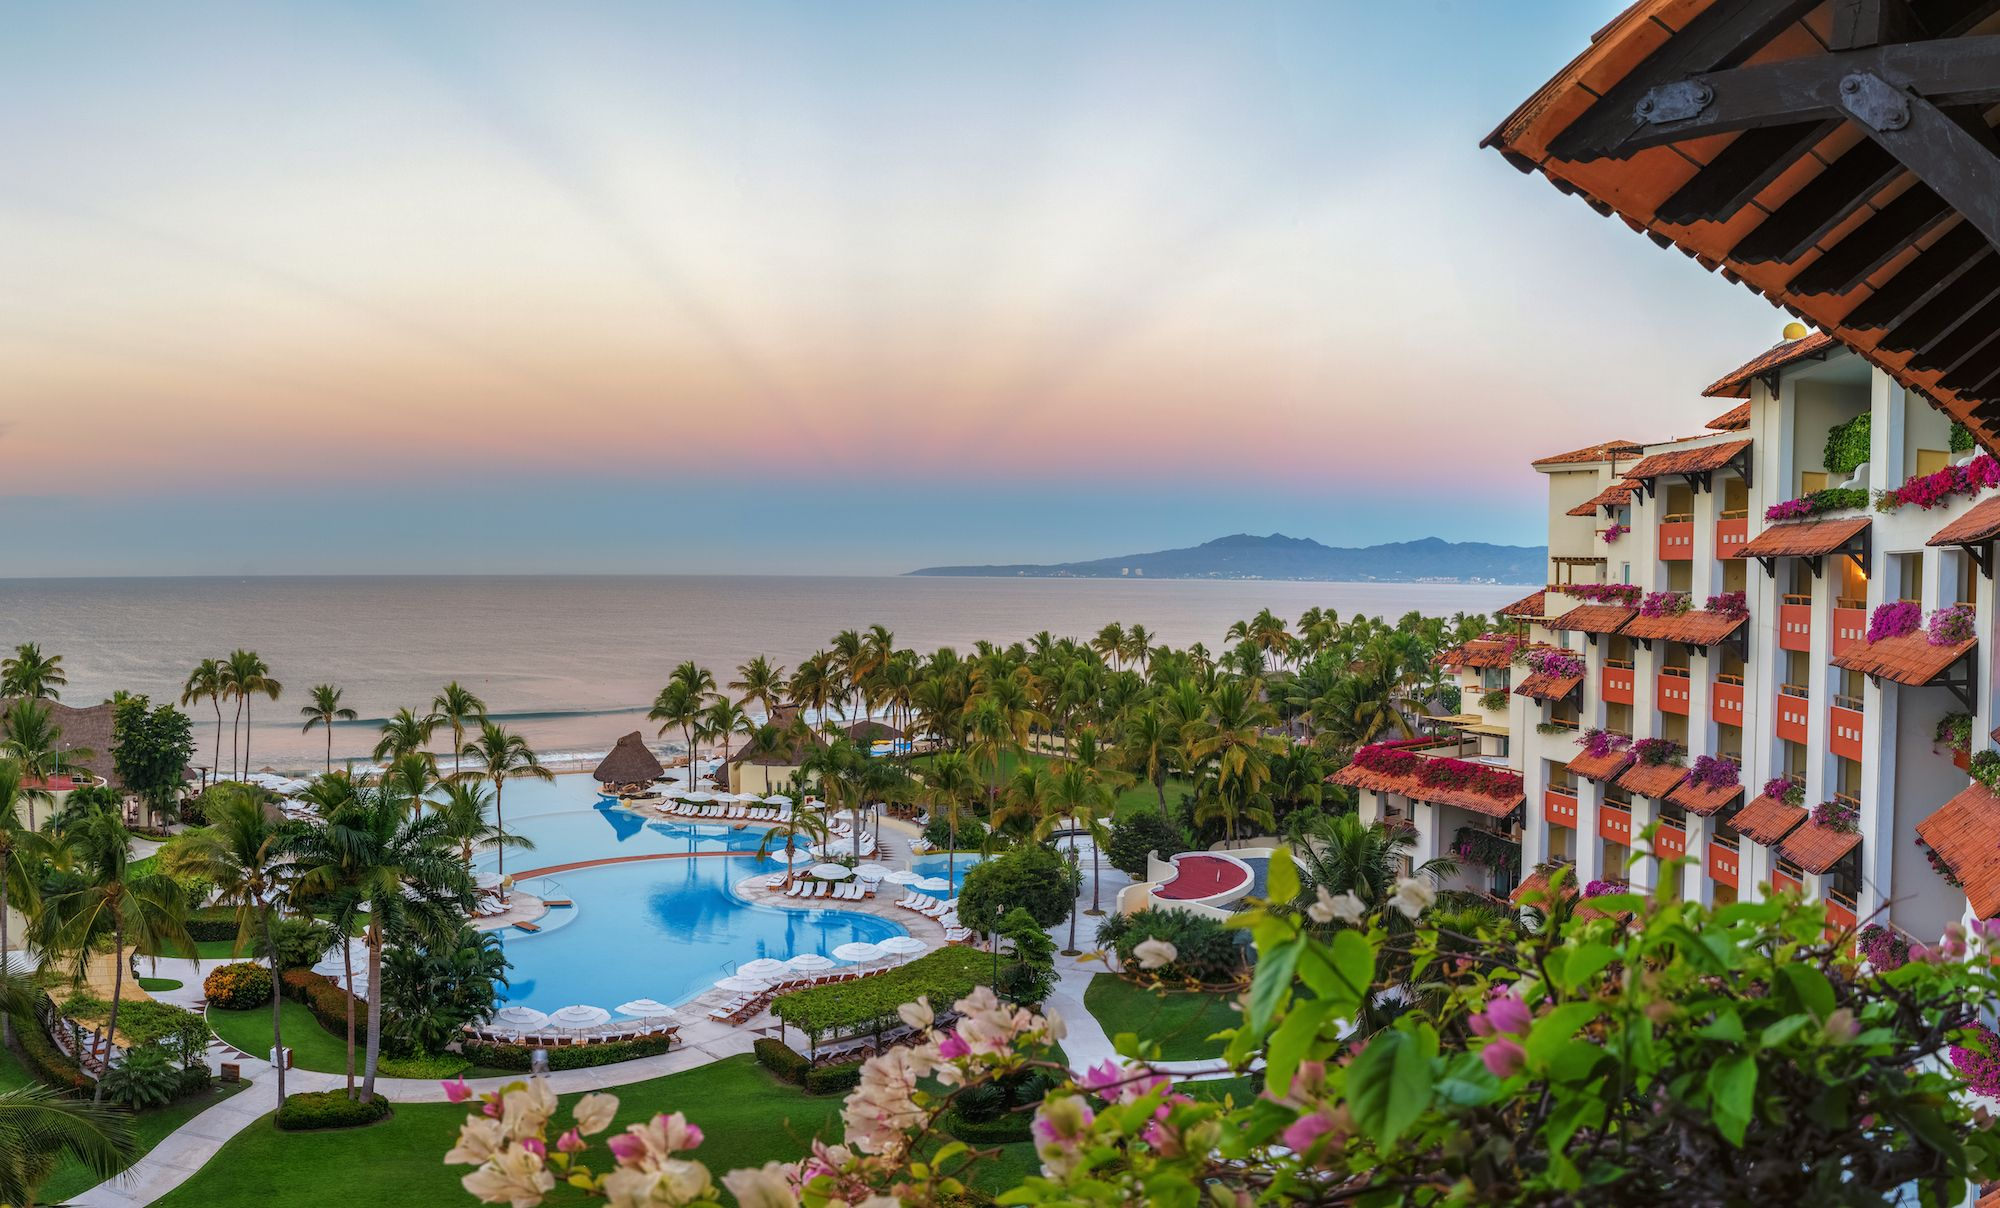 All Inclusive Resort 15 Best All Inclusive Resorts In The World Luxury All Inclusive